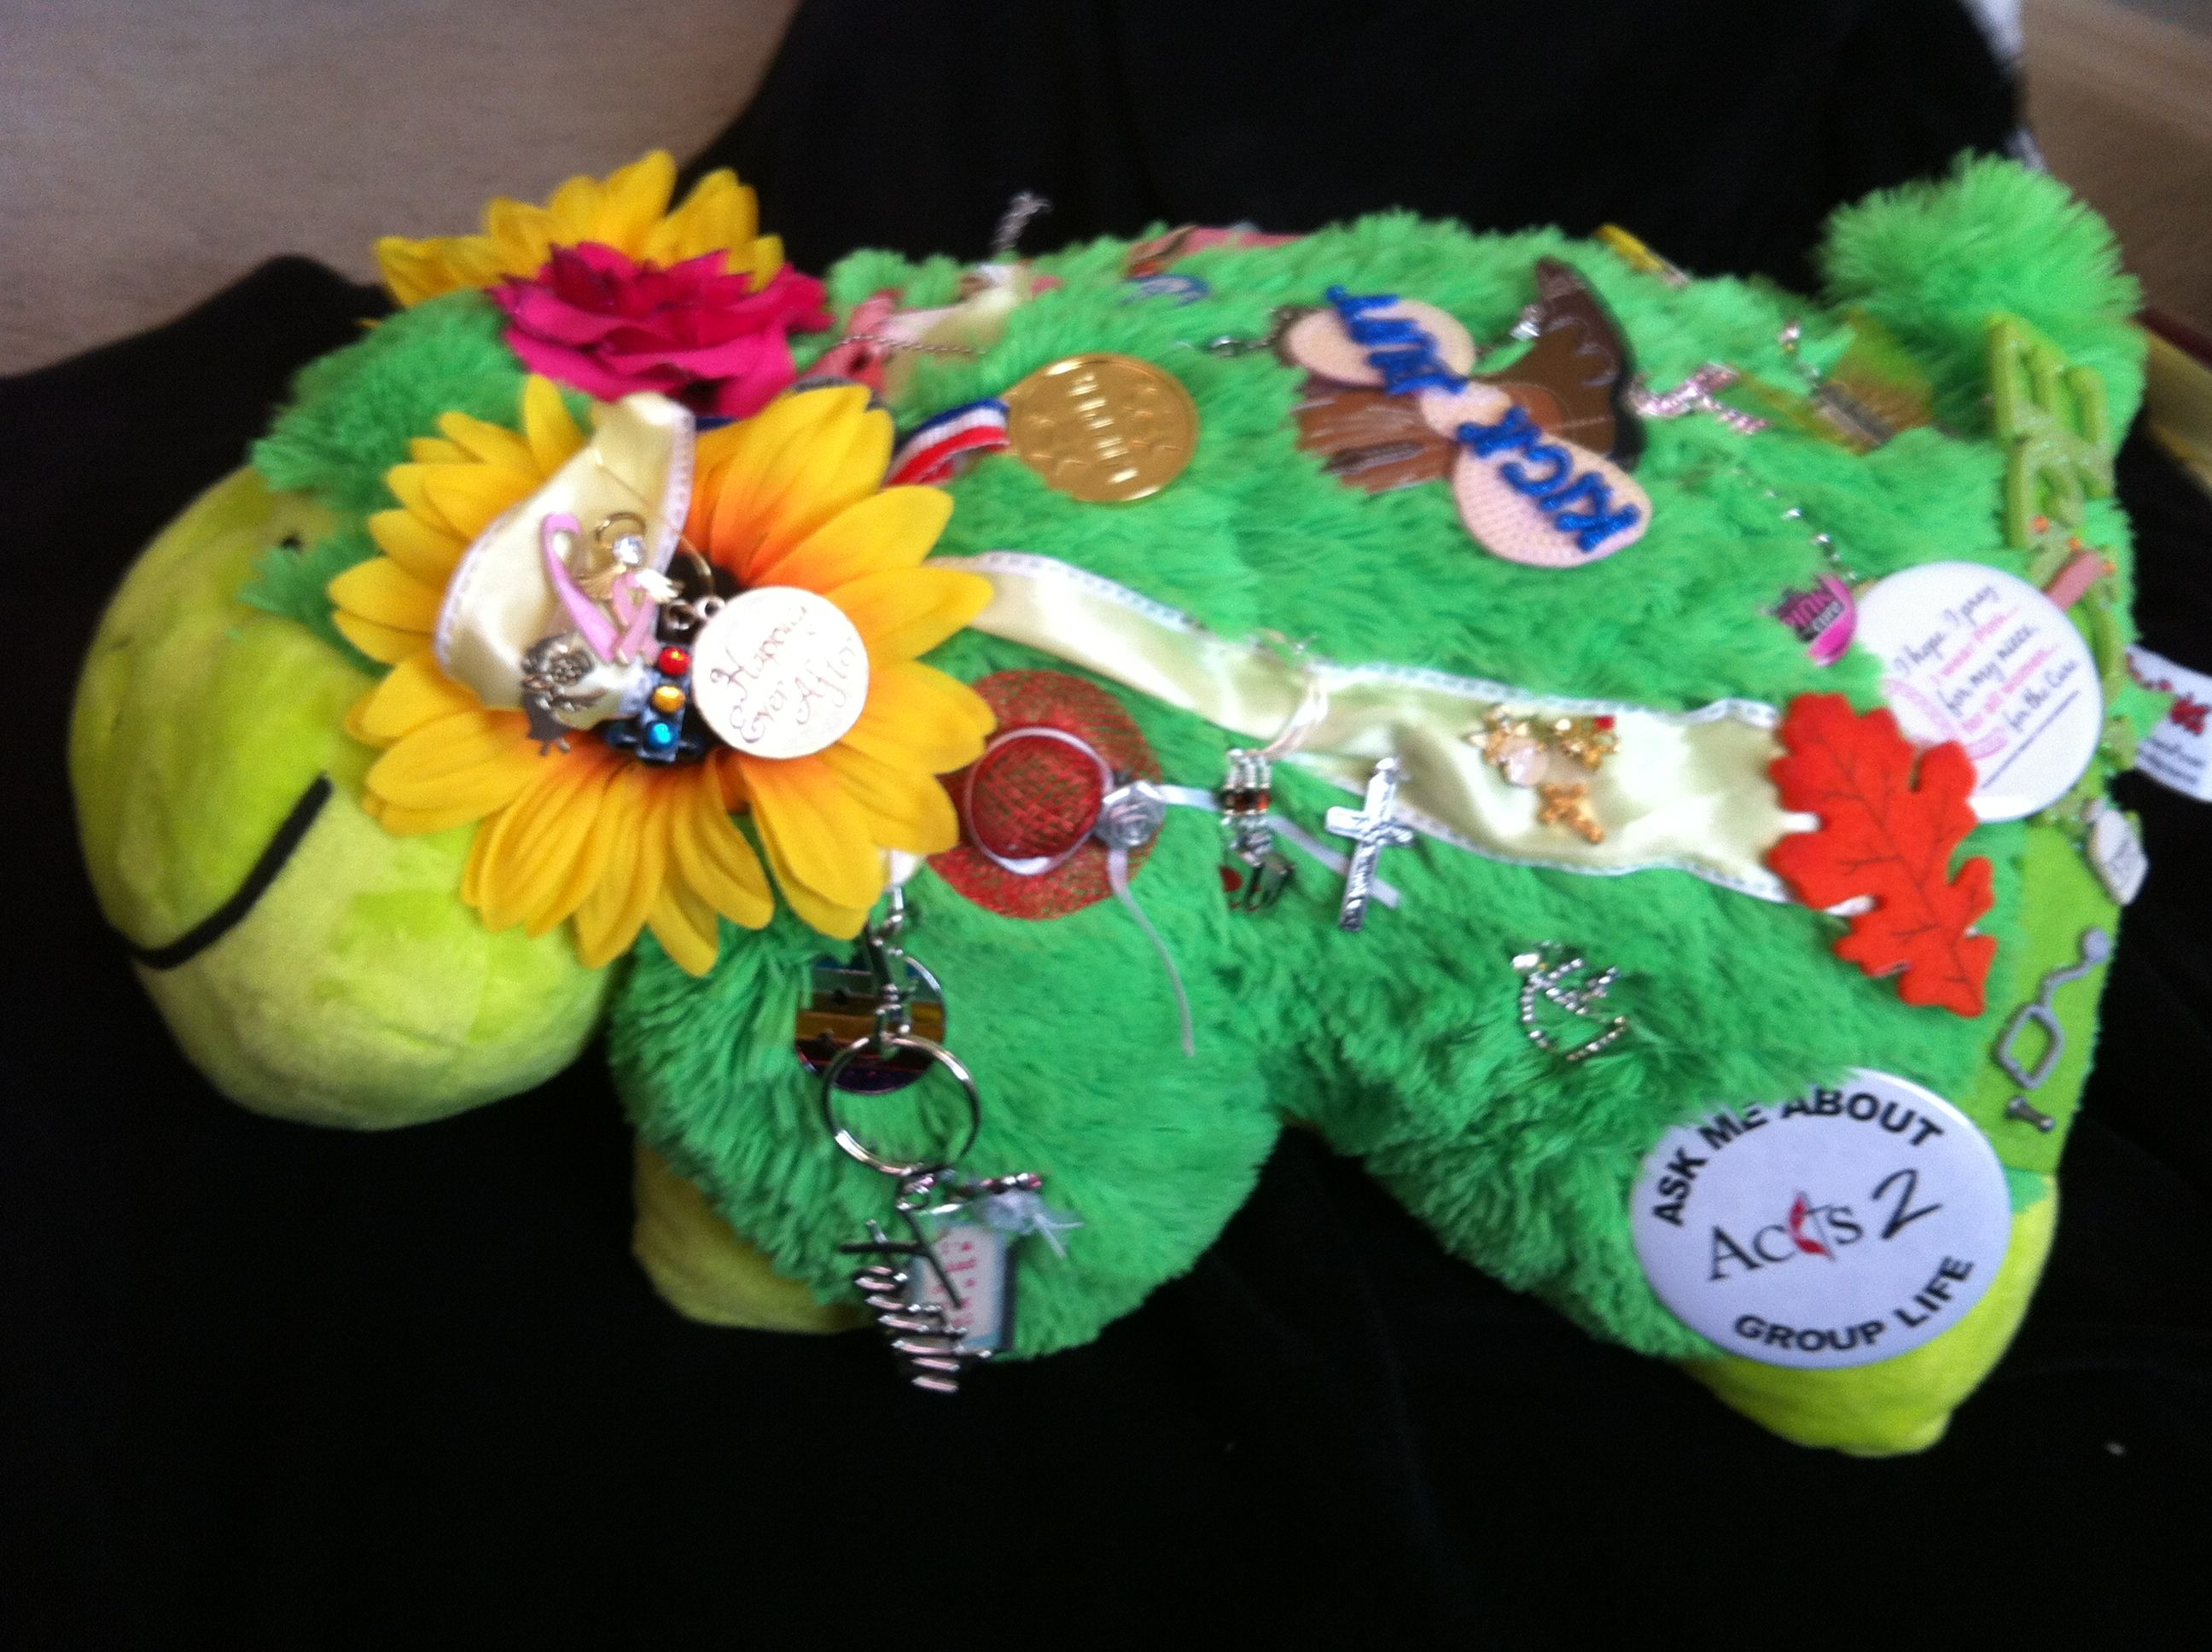 Prayer pillow with pins from so many of you - each with its own meaning. I will always treasure this thing.